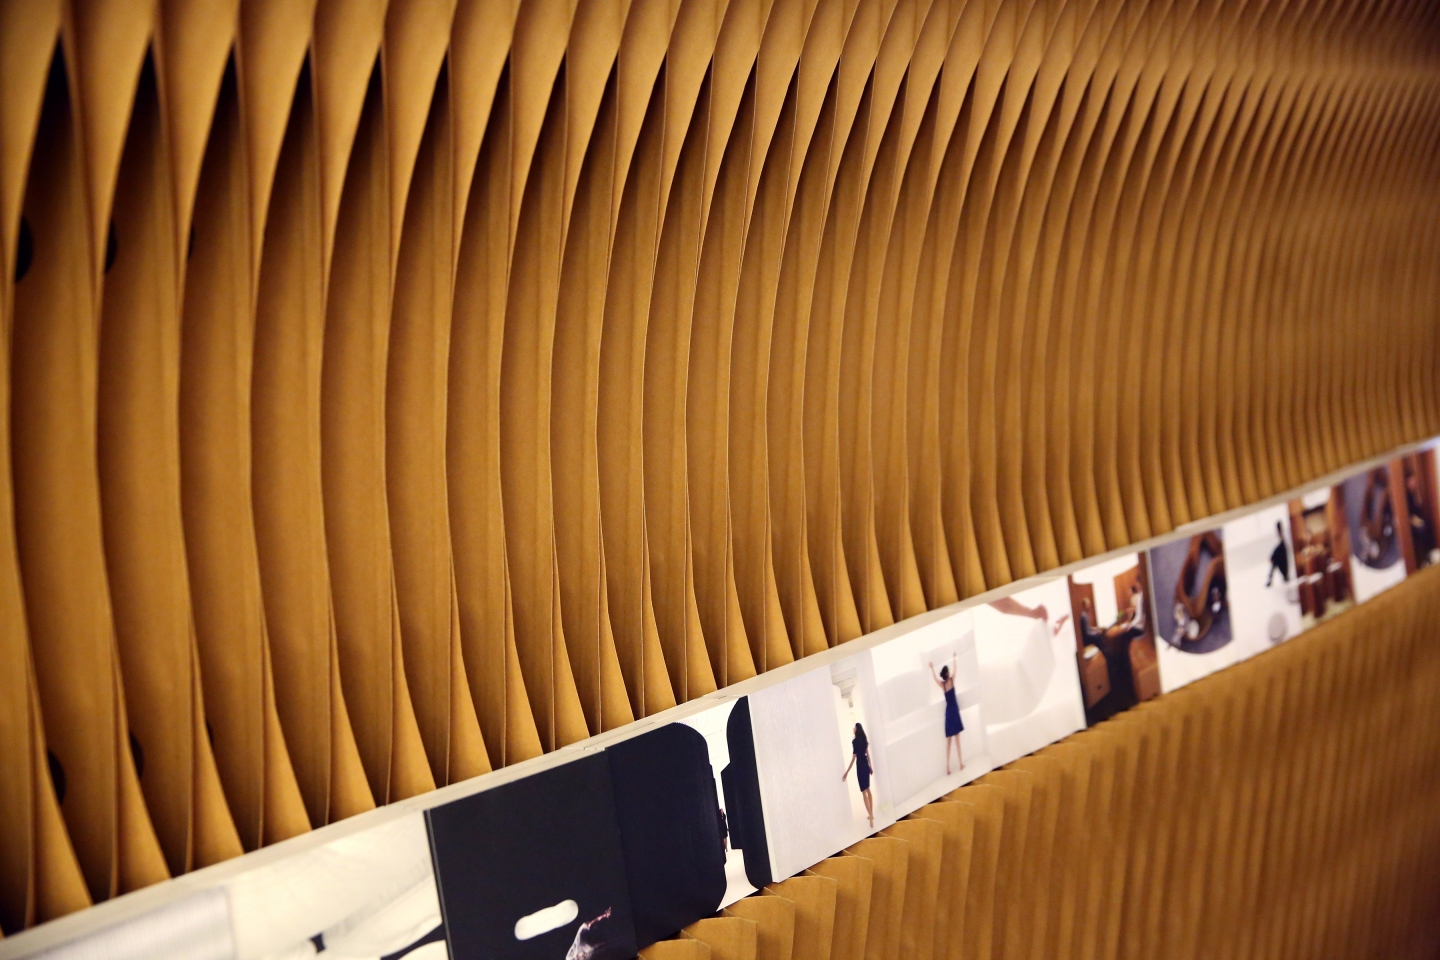 paper wall by molo - notch cuts can be made in softwall for demonstrating print materials